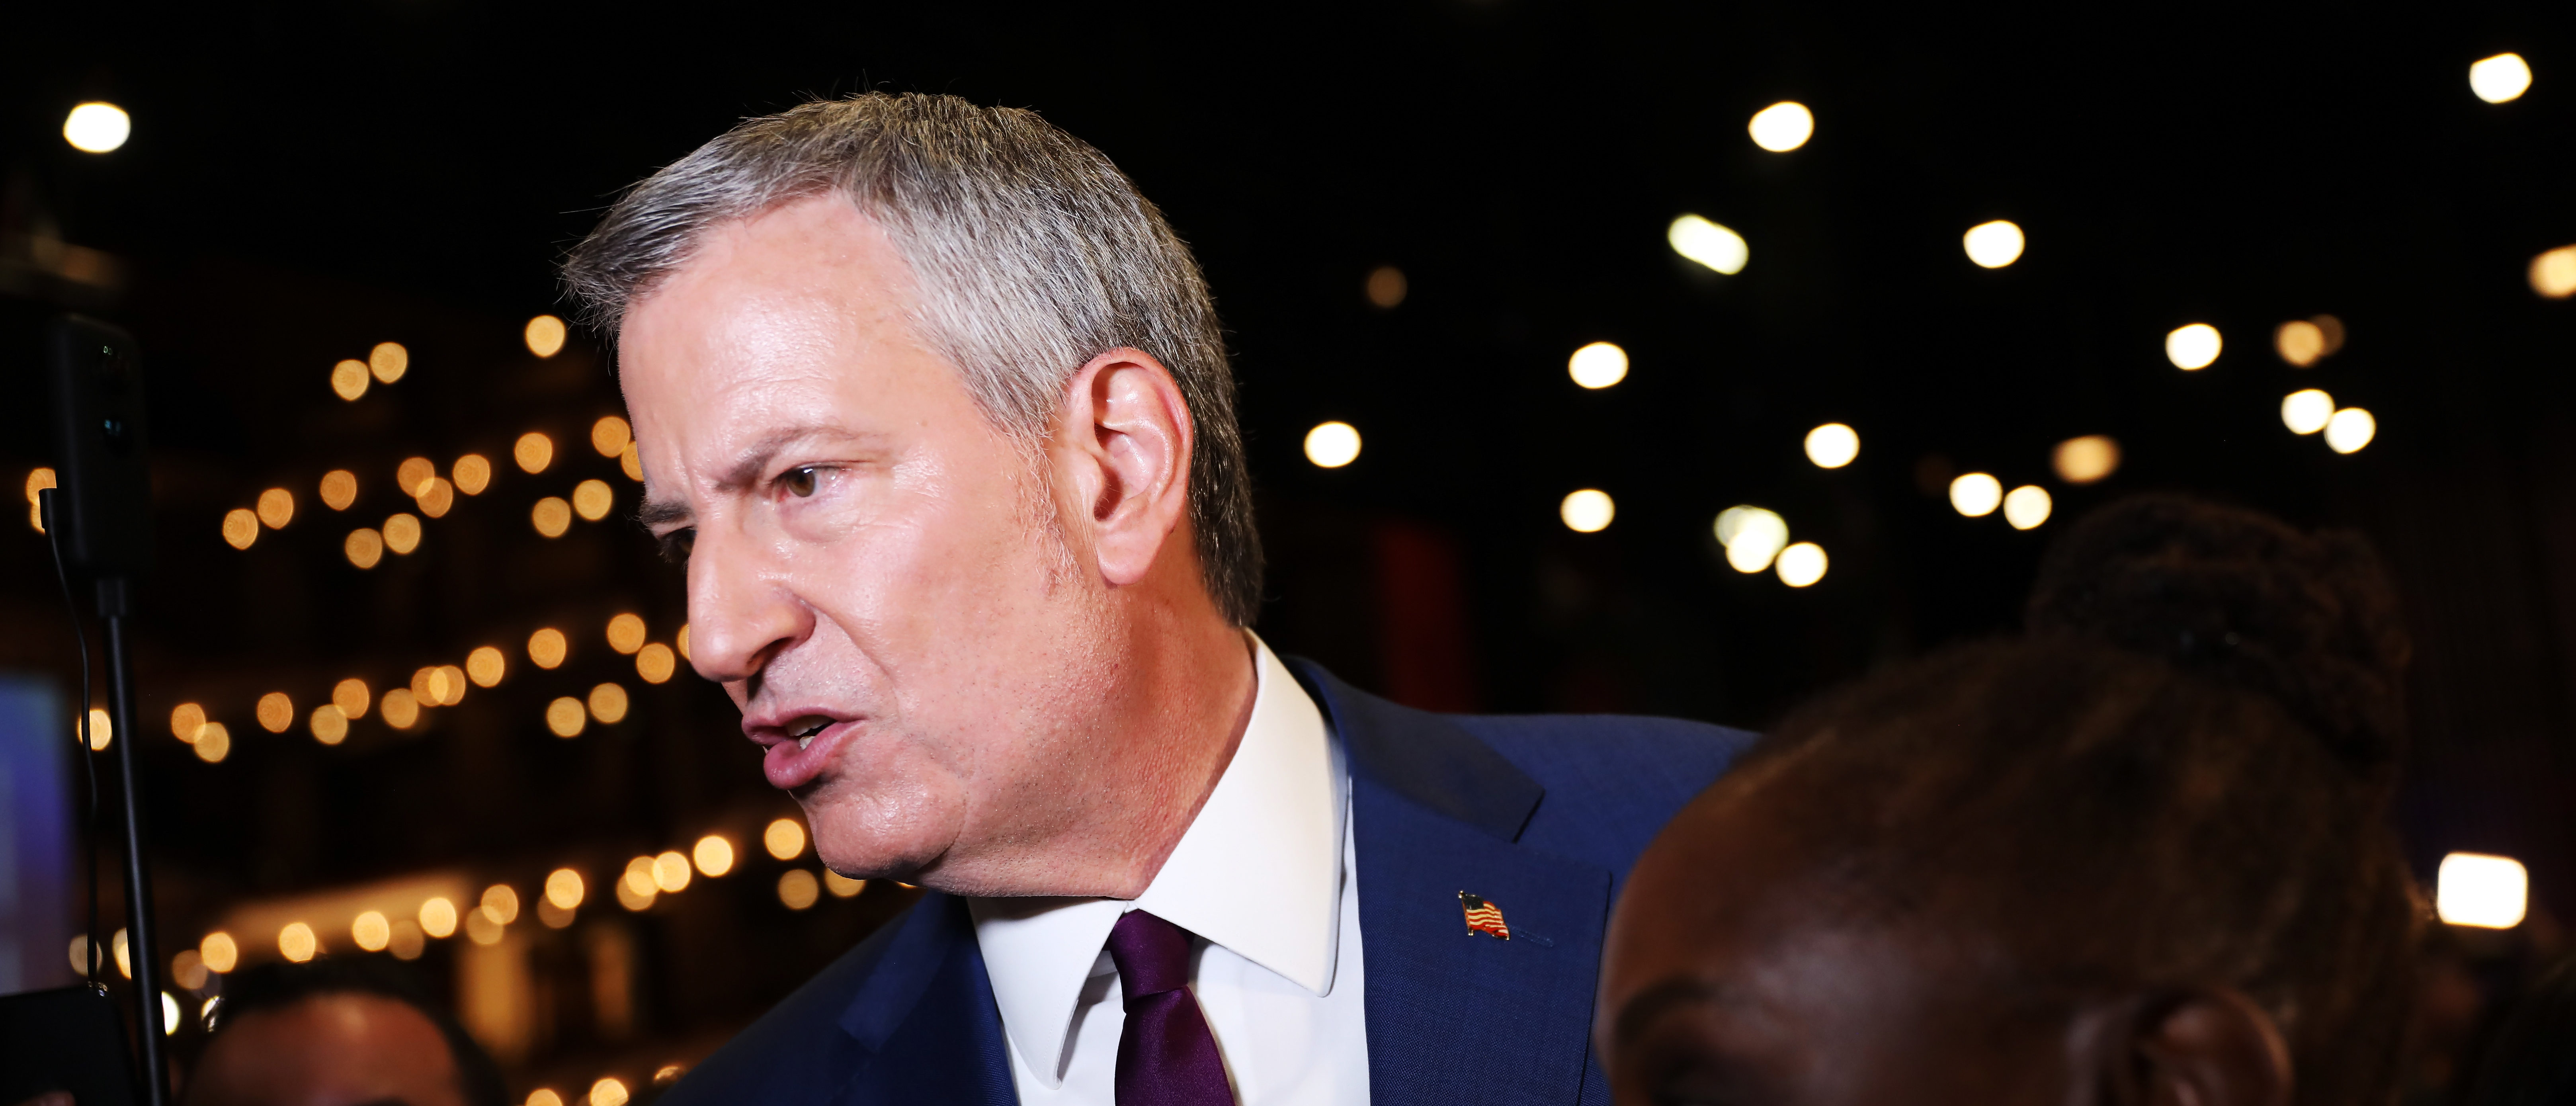 New York City Mayor Bill De Blasio speaks to the media in the spin room following the first night of the Democratic presidential debate on June 26, 2019 in Miami, Florida. (Joe Raedle/Getty Images)